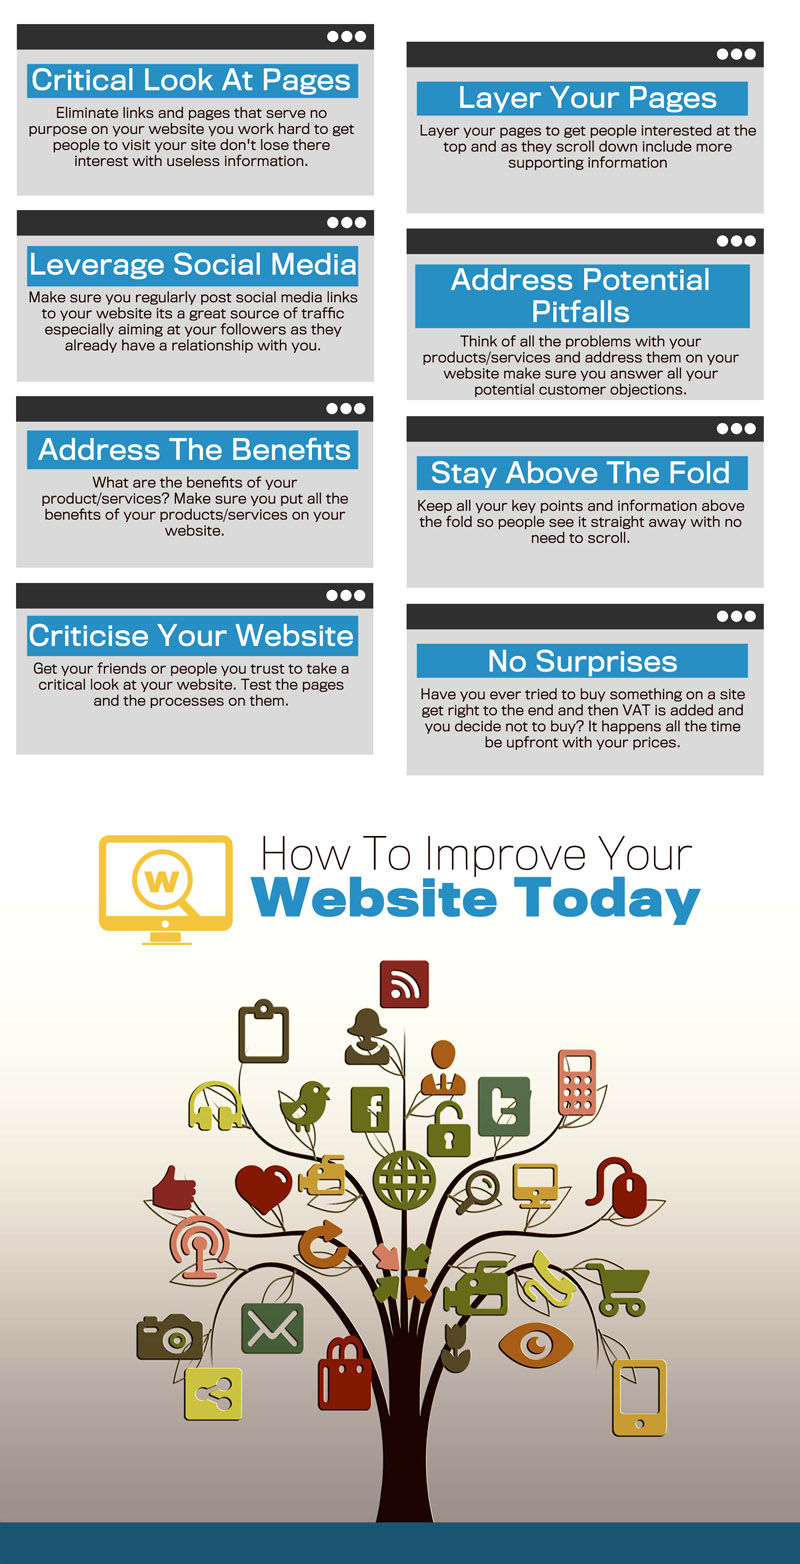 How To Improve Your Website Starting Today